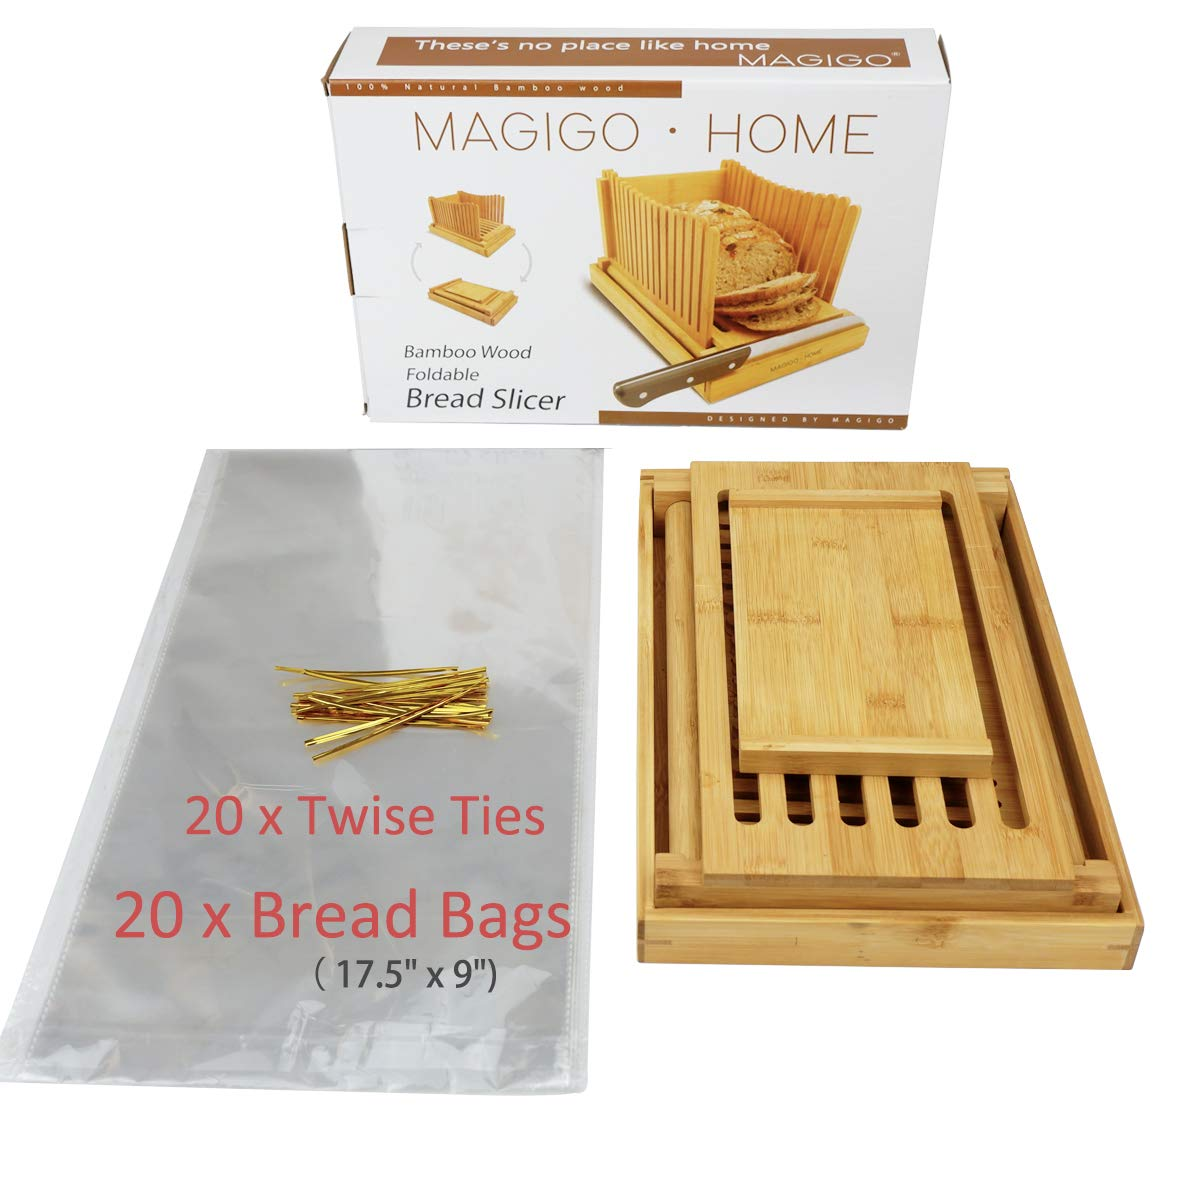 MAGIGO Nature Bamboo Foldable Bread Slicer with Crumb Catcher Tray, Bread Slicing Guide and Knife Rest for Homemade Bread & Loaf Cakes, Thickness Adjustable, Contains 20 Bread Bags & 20 Twist Ties by MAGIGO (Image #7)